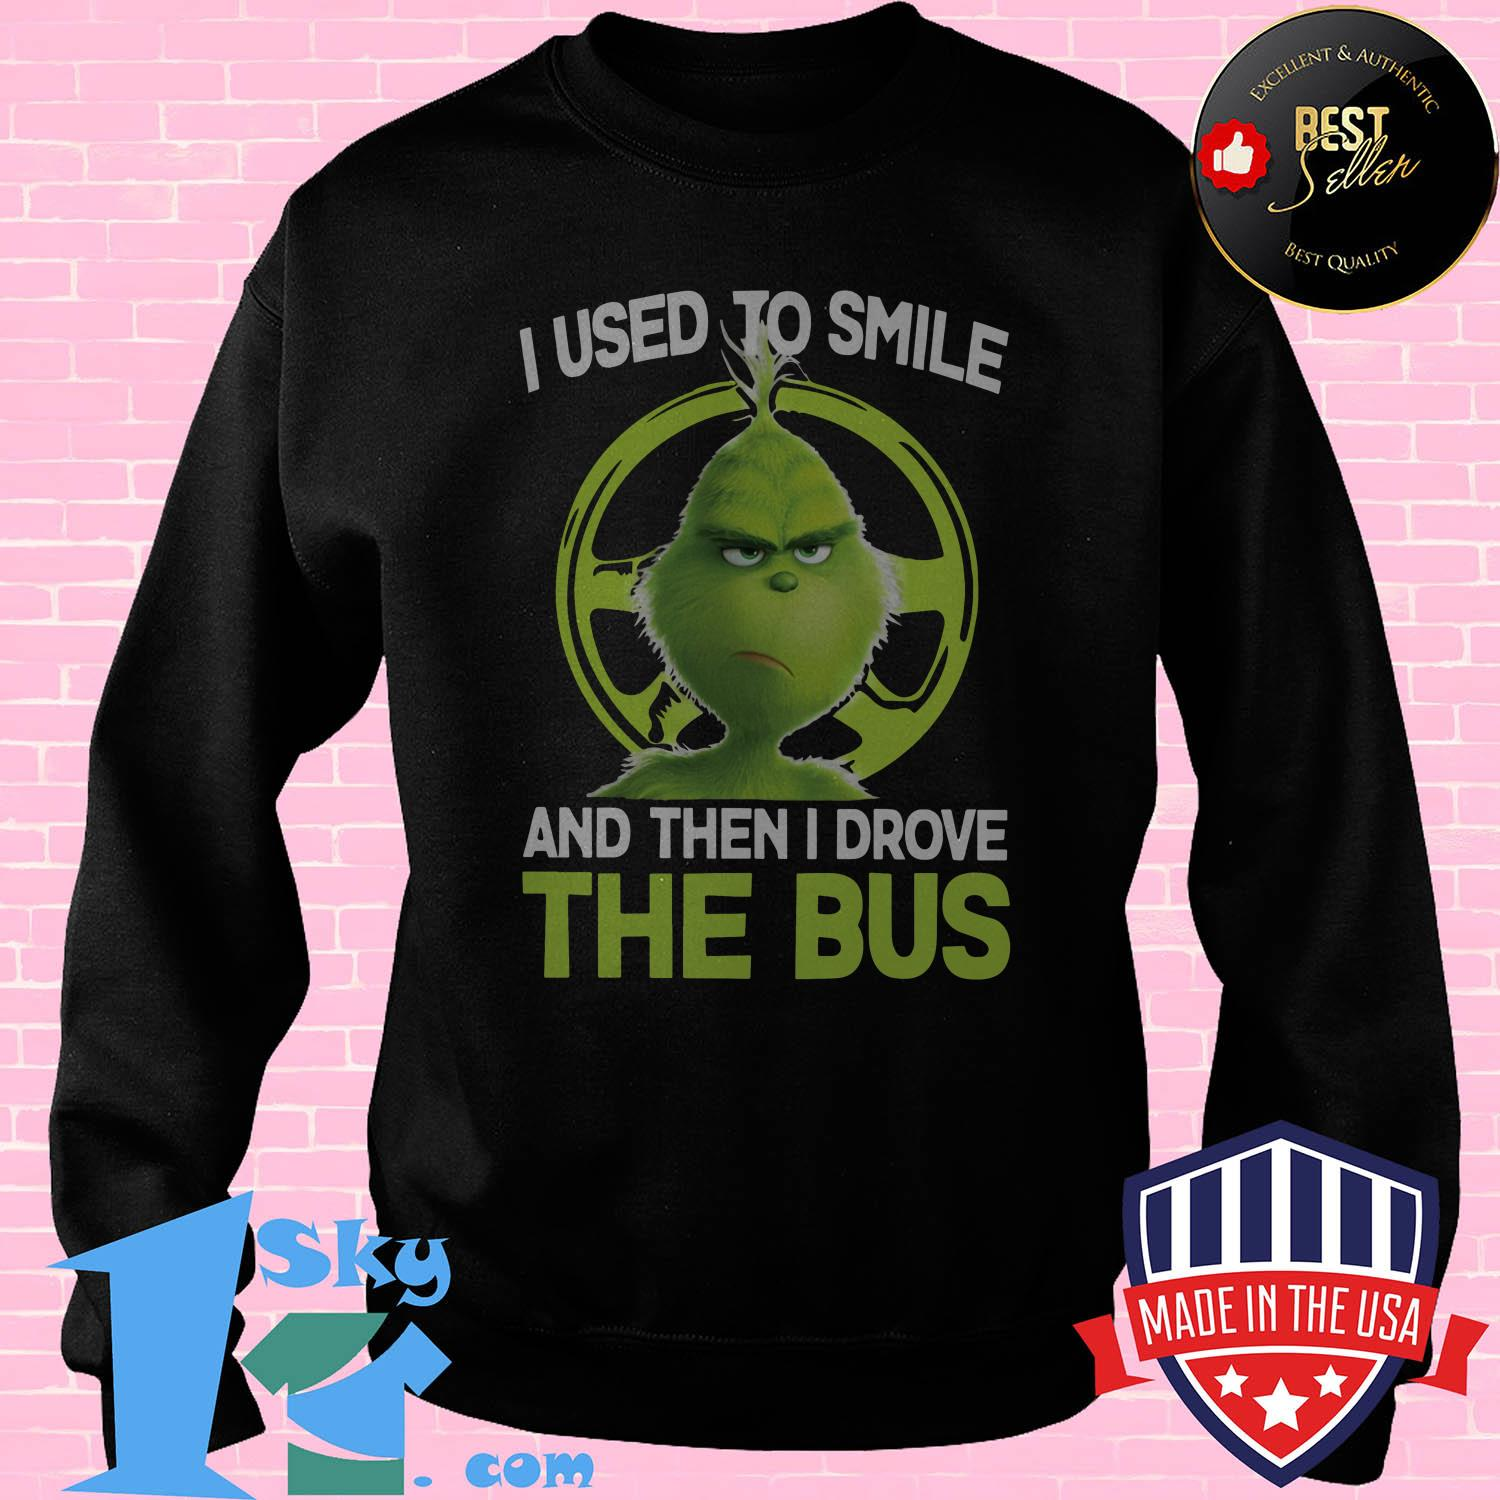 the grinch i used to smile and then i drove the bus sweatshirt - The Grinch I Used To Smile And Then I Drove The Bus shirt